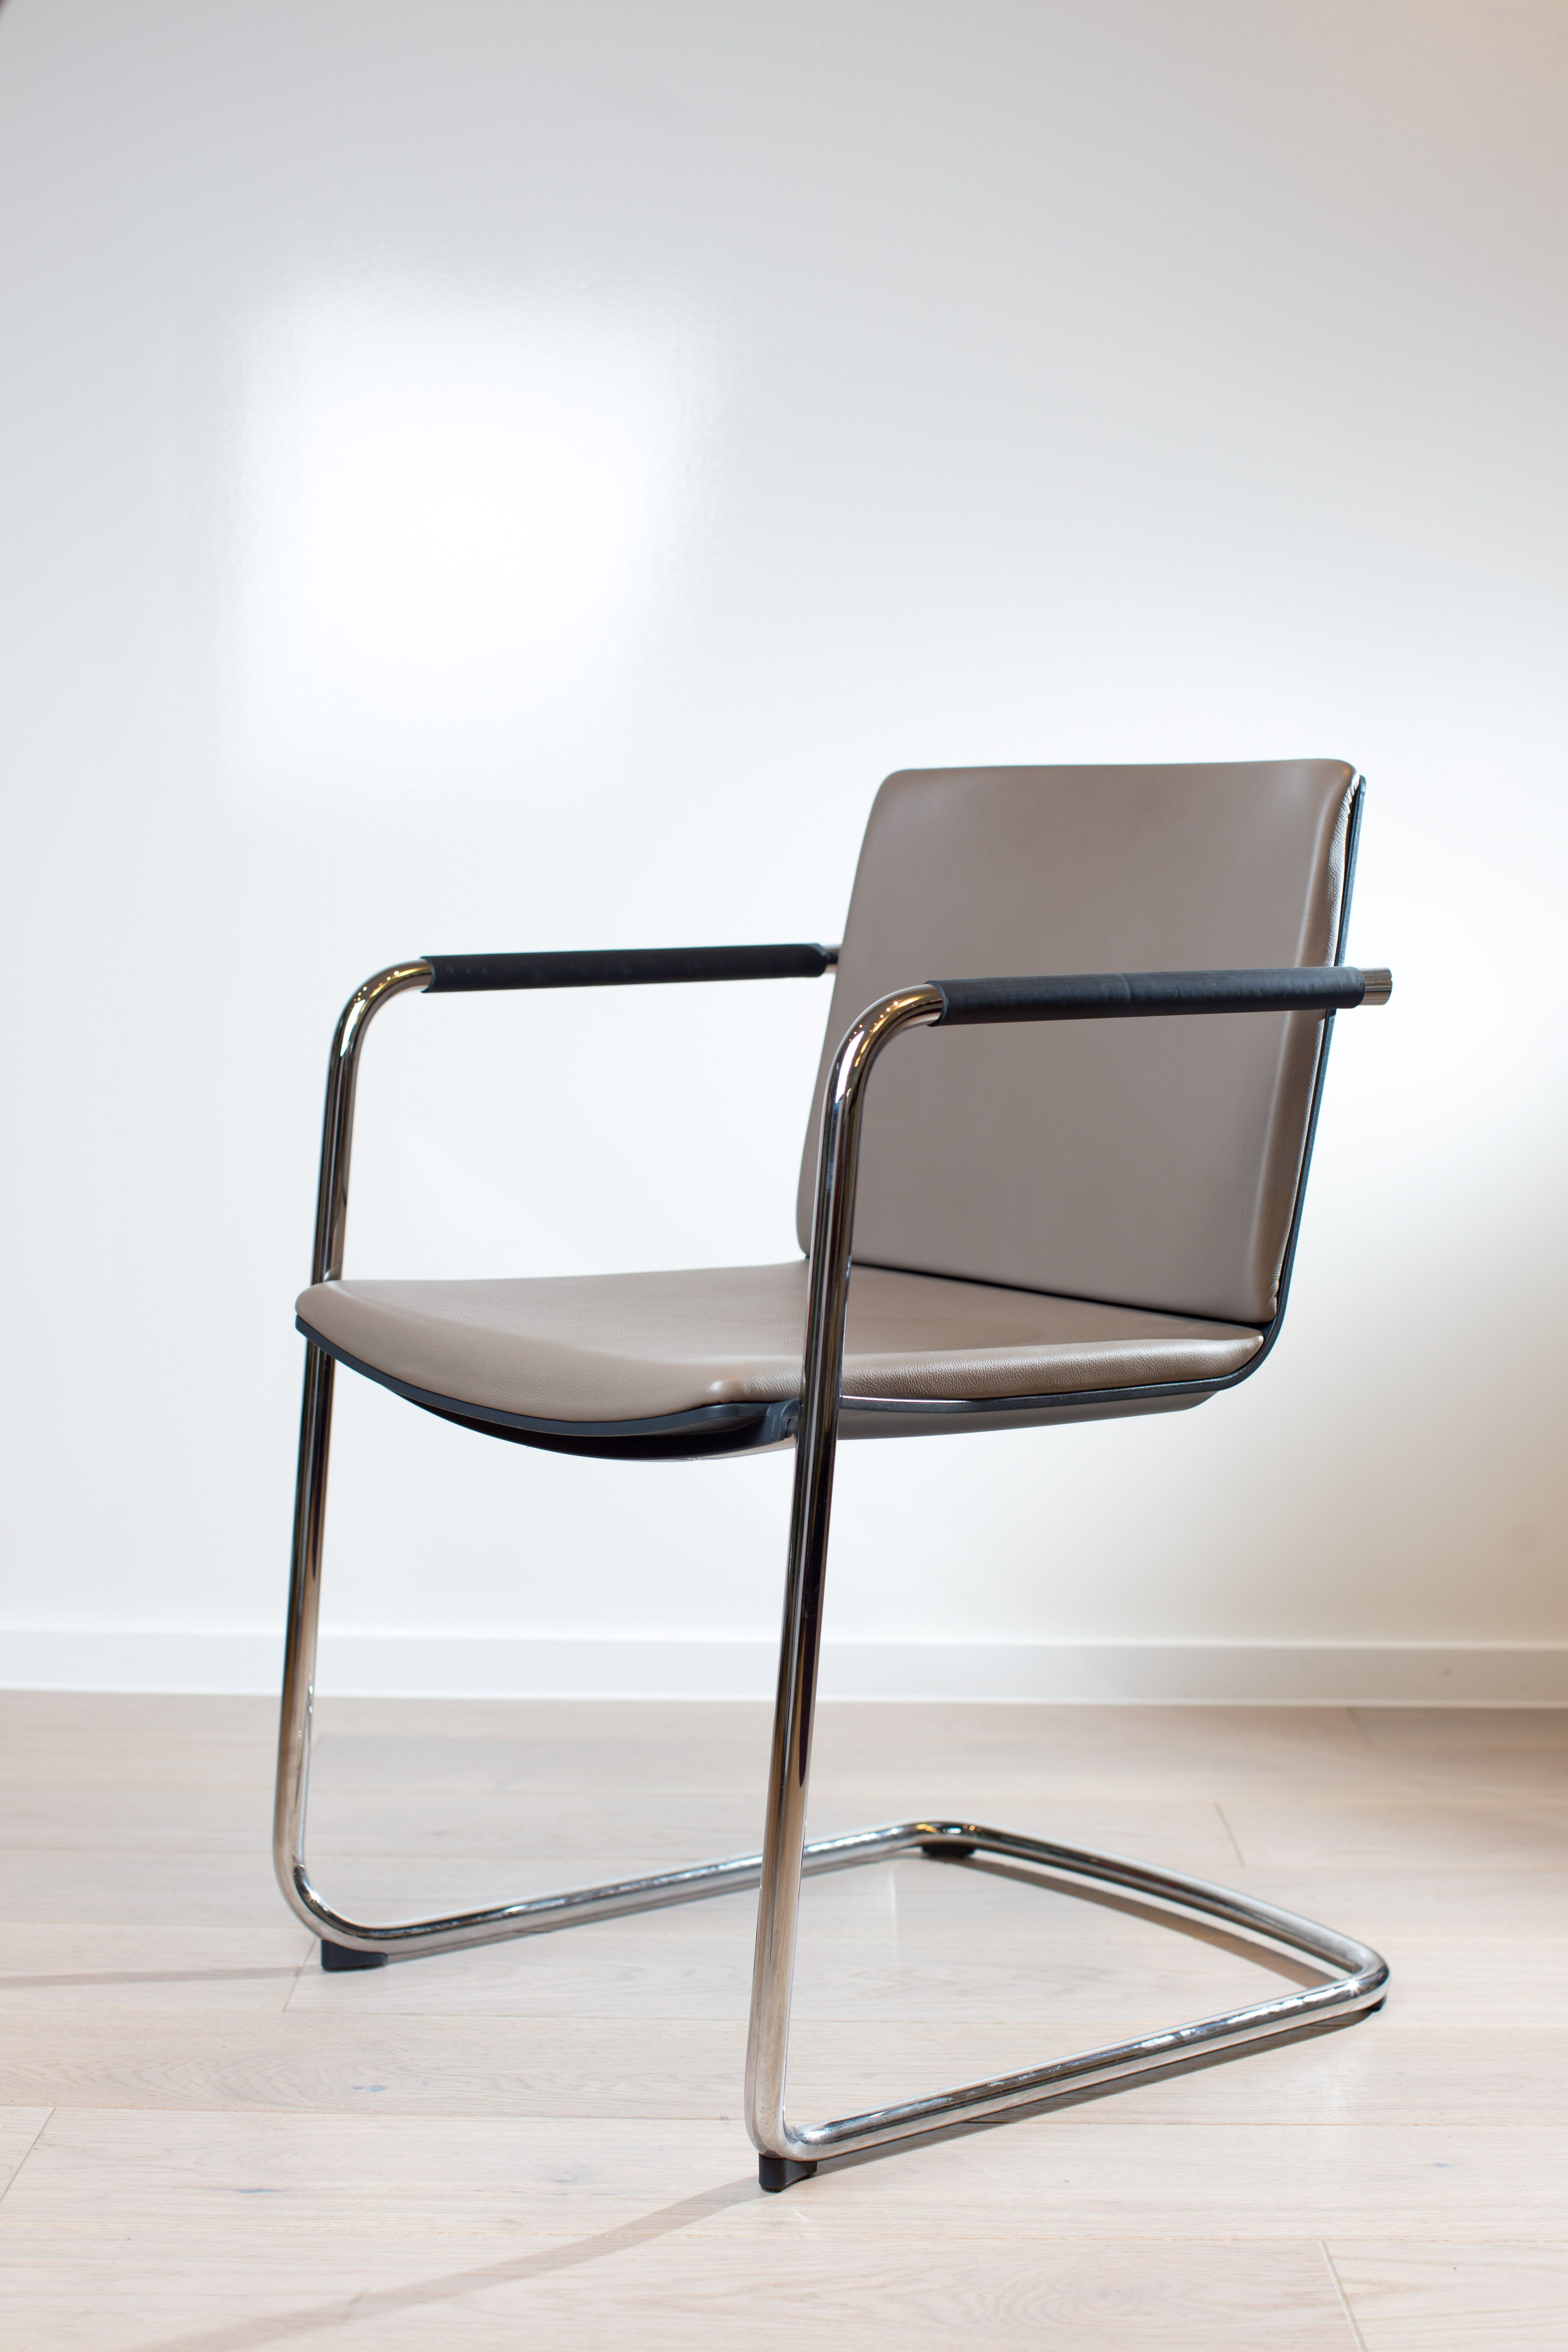 Cantilever chair Neos   Conference and visitor chairCantilever chair Neos   Conference and visitor chair   183 3  . Office Furniture Showroom Central London. Home Design Ideas